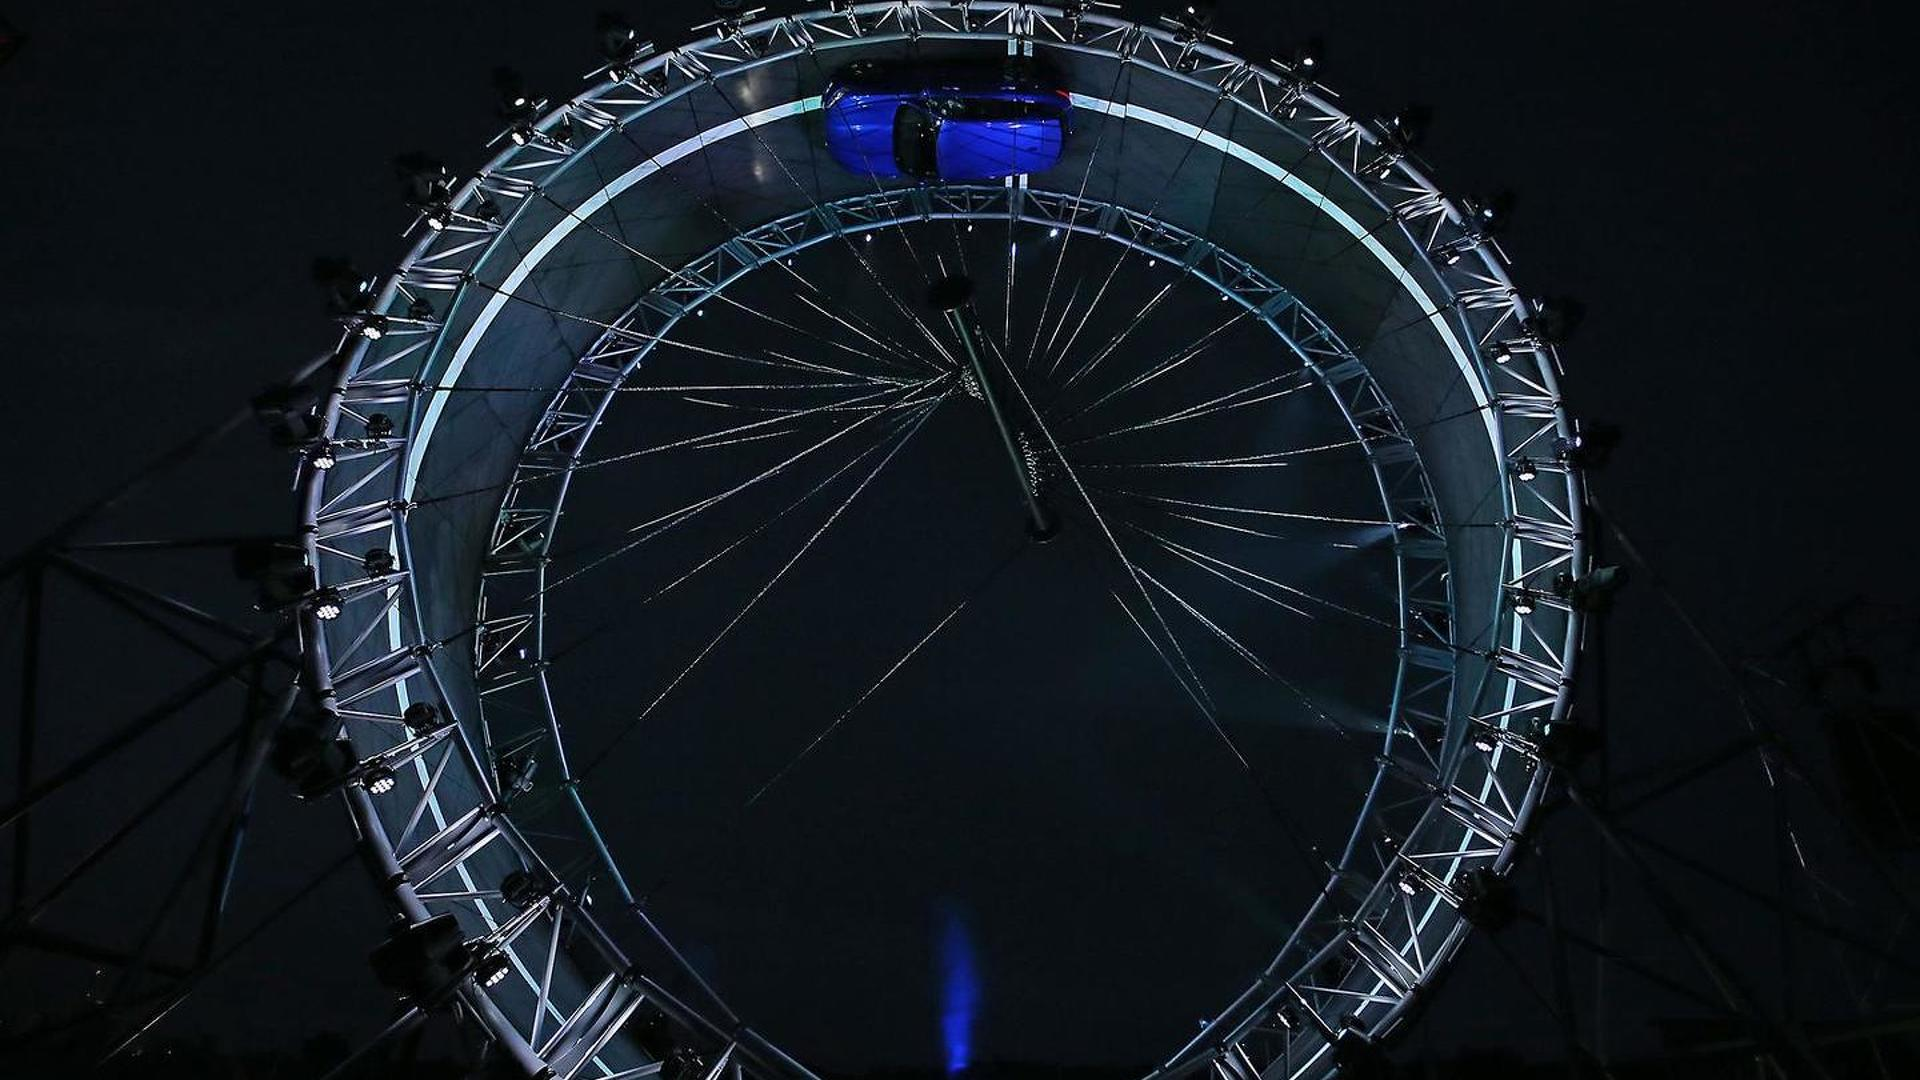 Check out the Jaguar F-Pace performing record-breaking 360-degree loop [video]